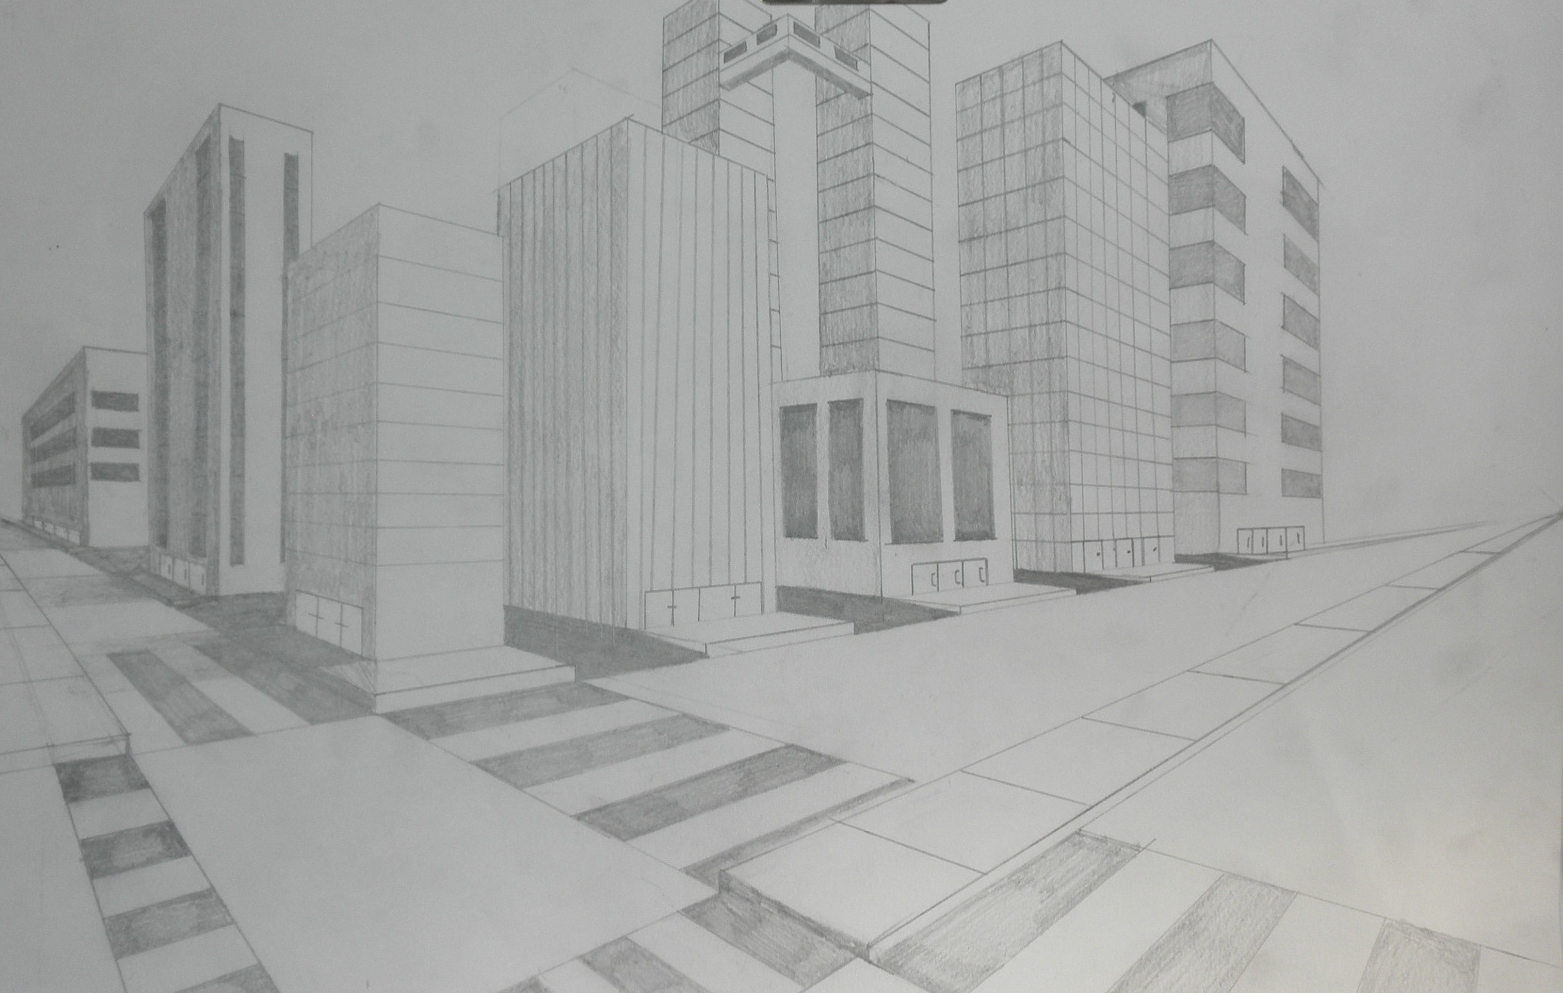 perspective drawings of buildings. Two-Point Perspective Drawings Of Buildings